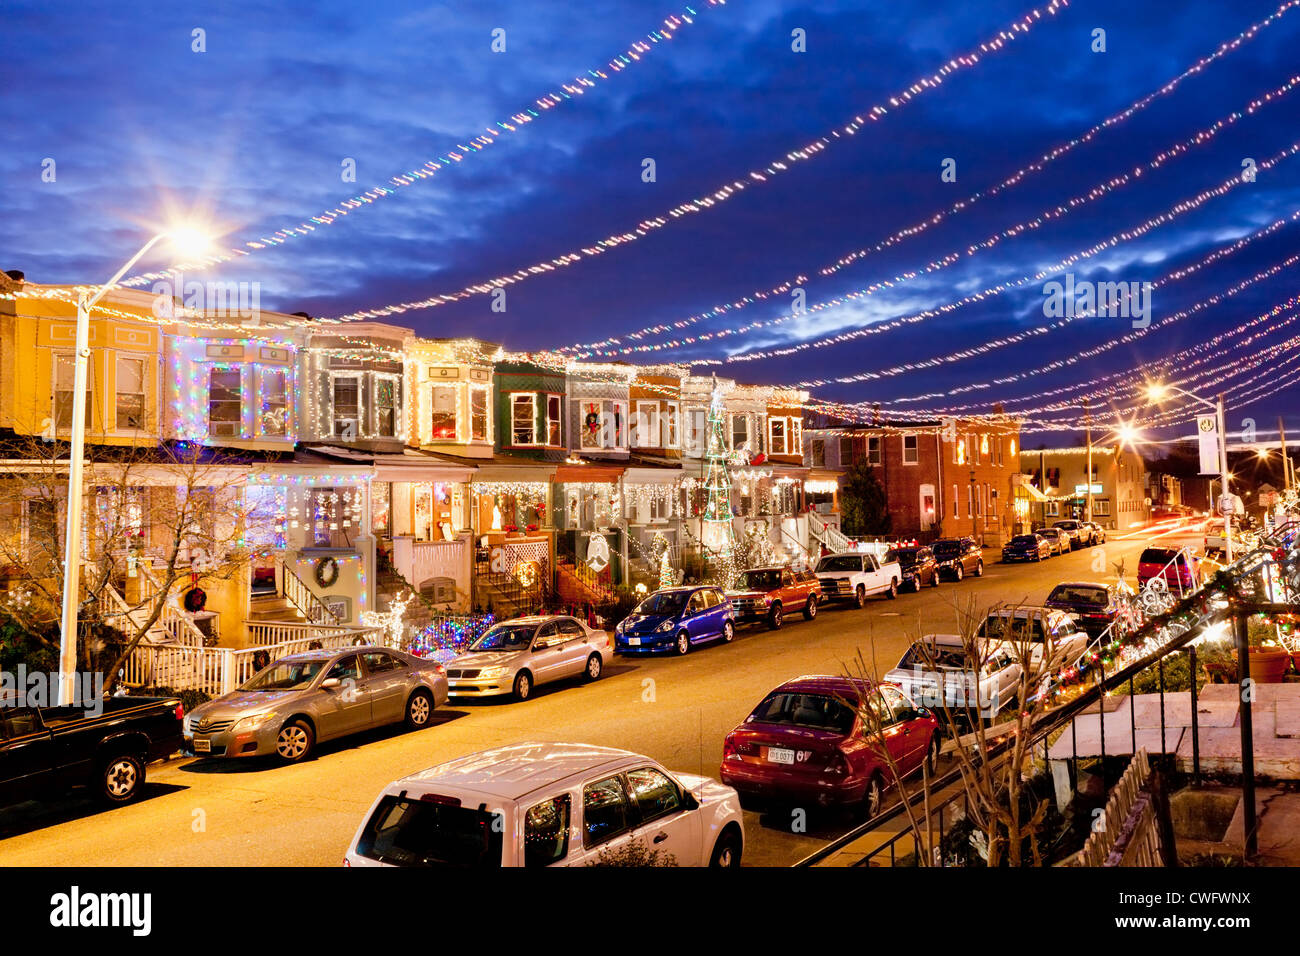 hampden neighborhood 34th street decorated for christmas baltimore maryland stock image - Christmas In Baltimore